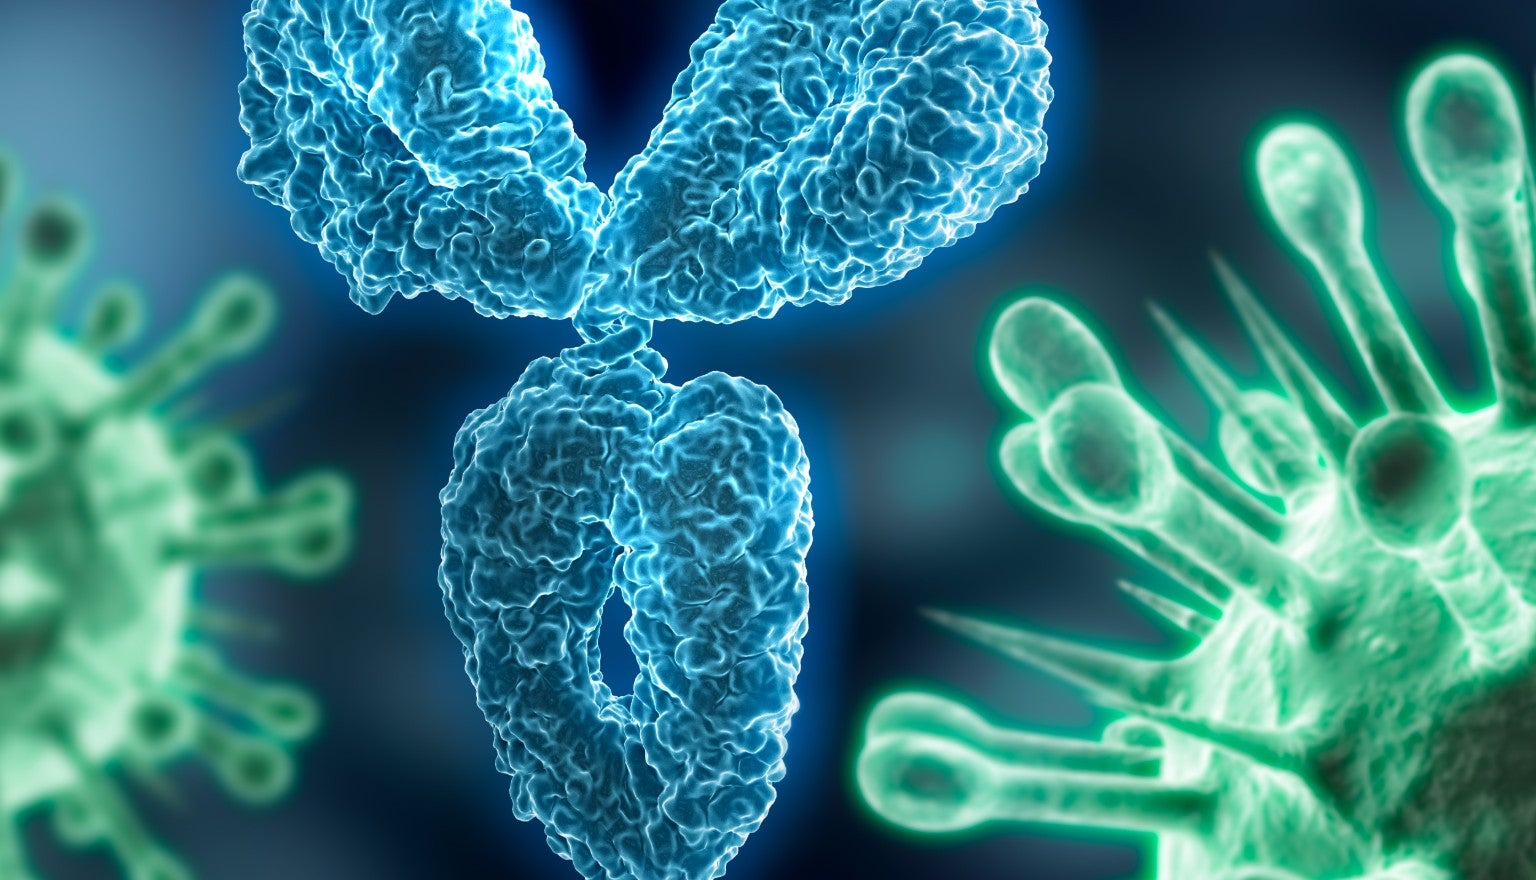 People carry antibodies after recovering from Coronavirus